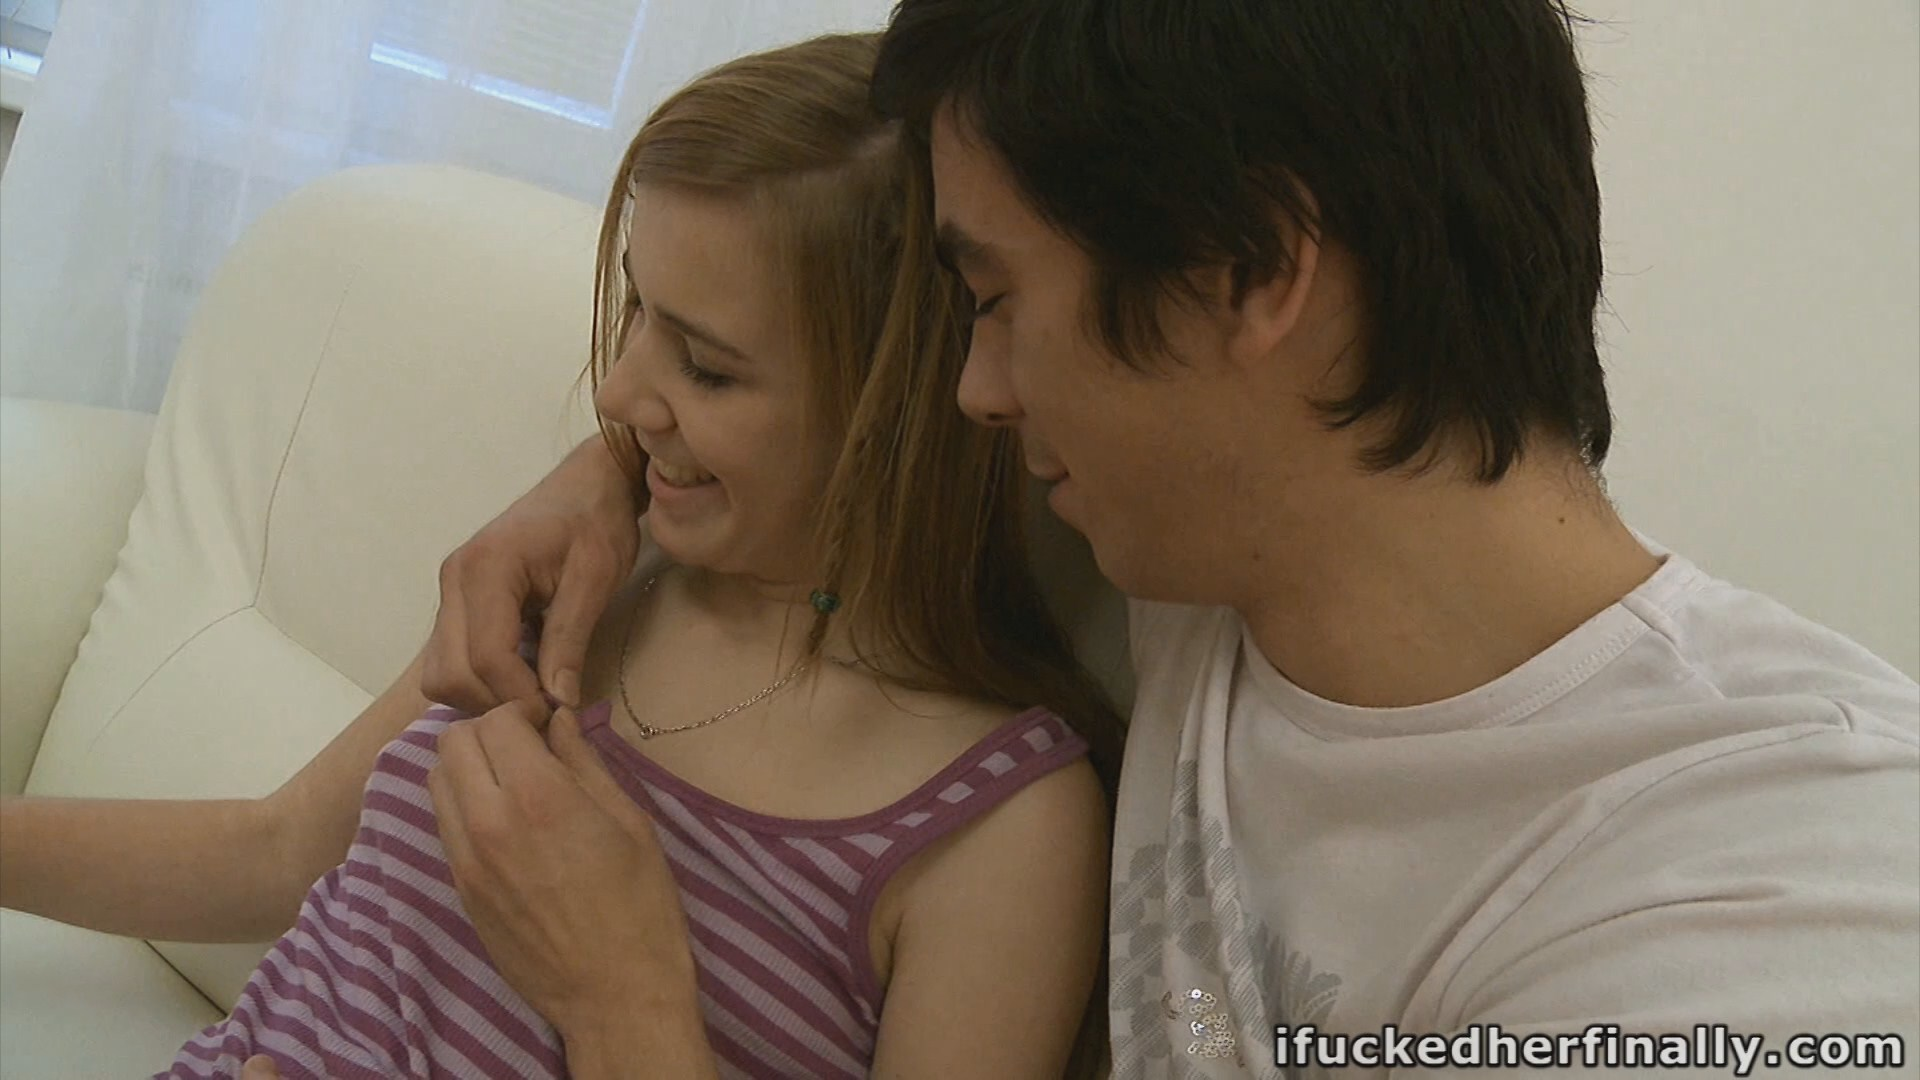 Very young-looking teenage cutie having fun with her boyfriend